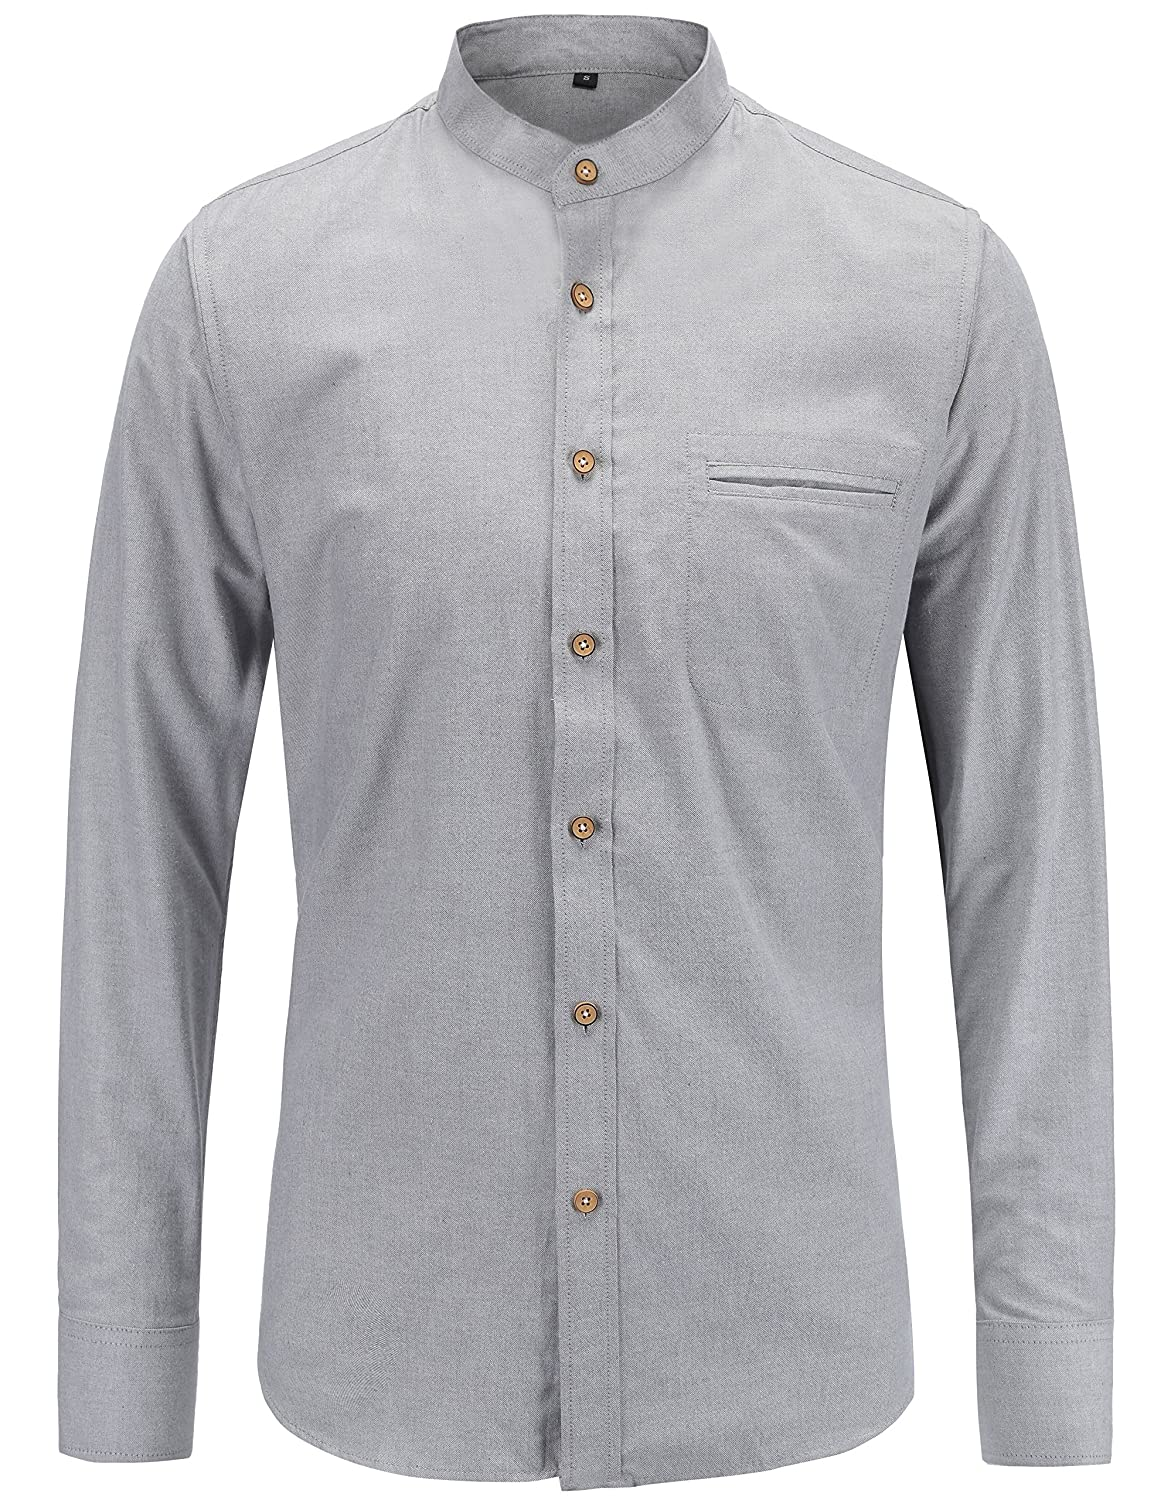 JEETOO Camisas Hombre Casual de Manga Larga Color Sólido Oxford